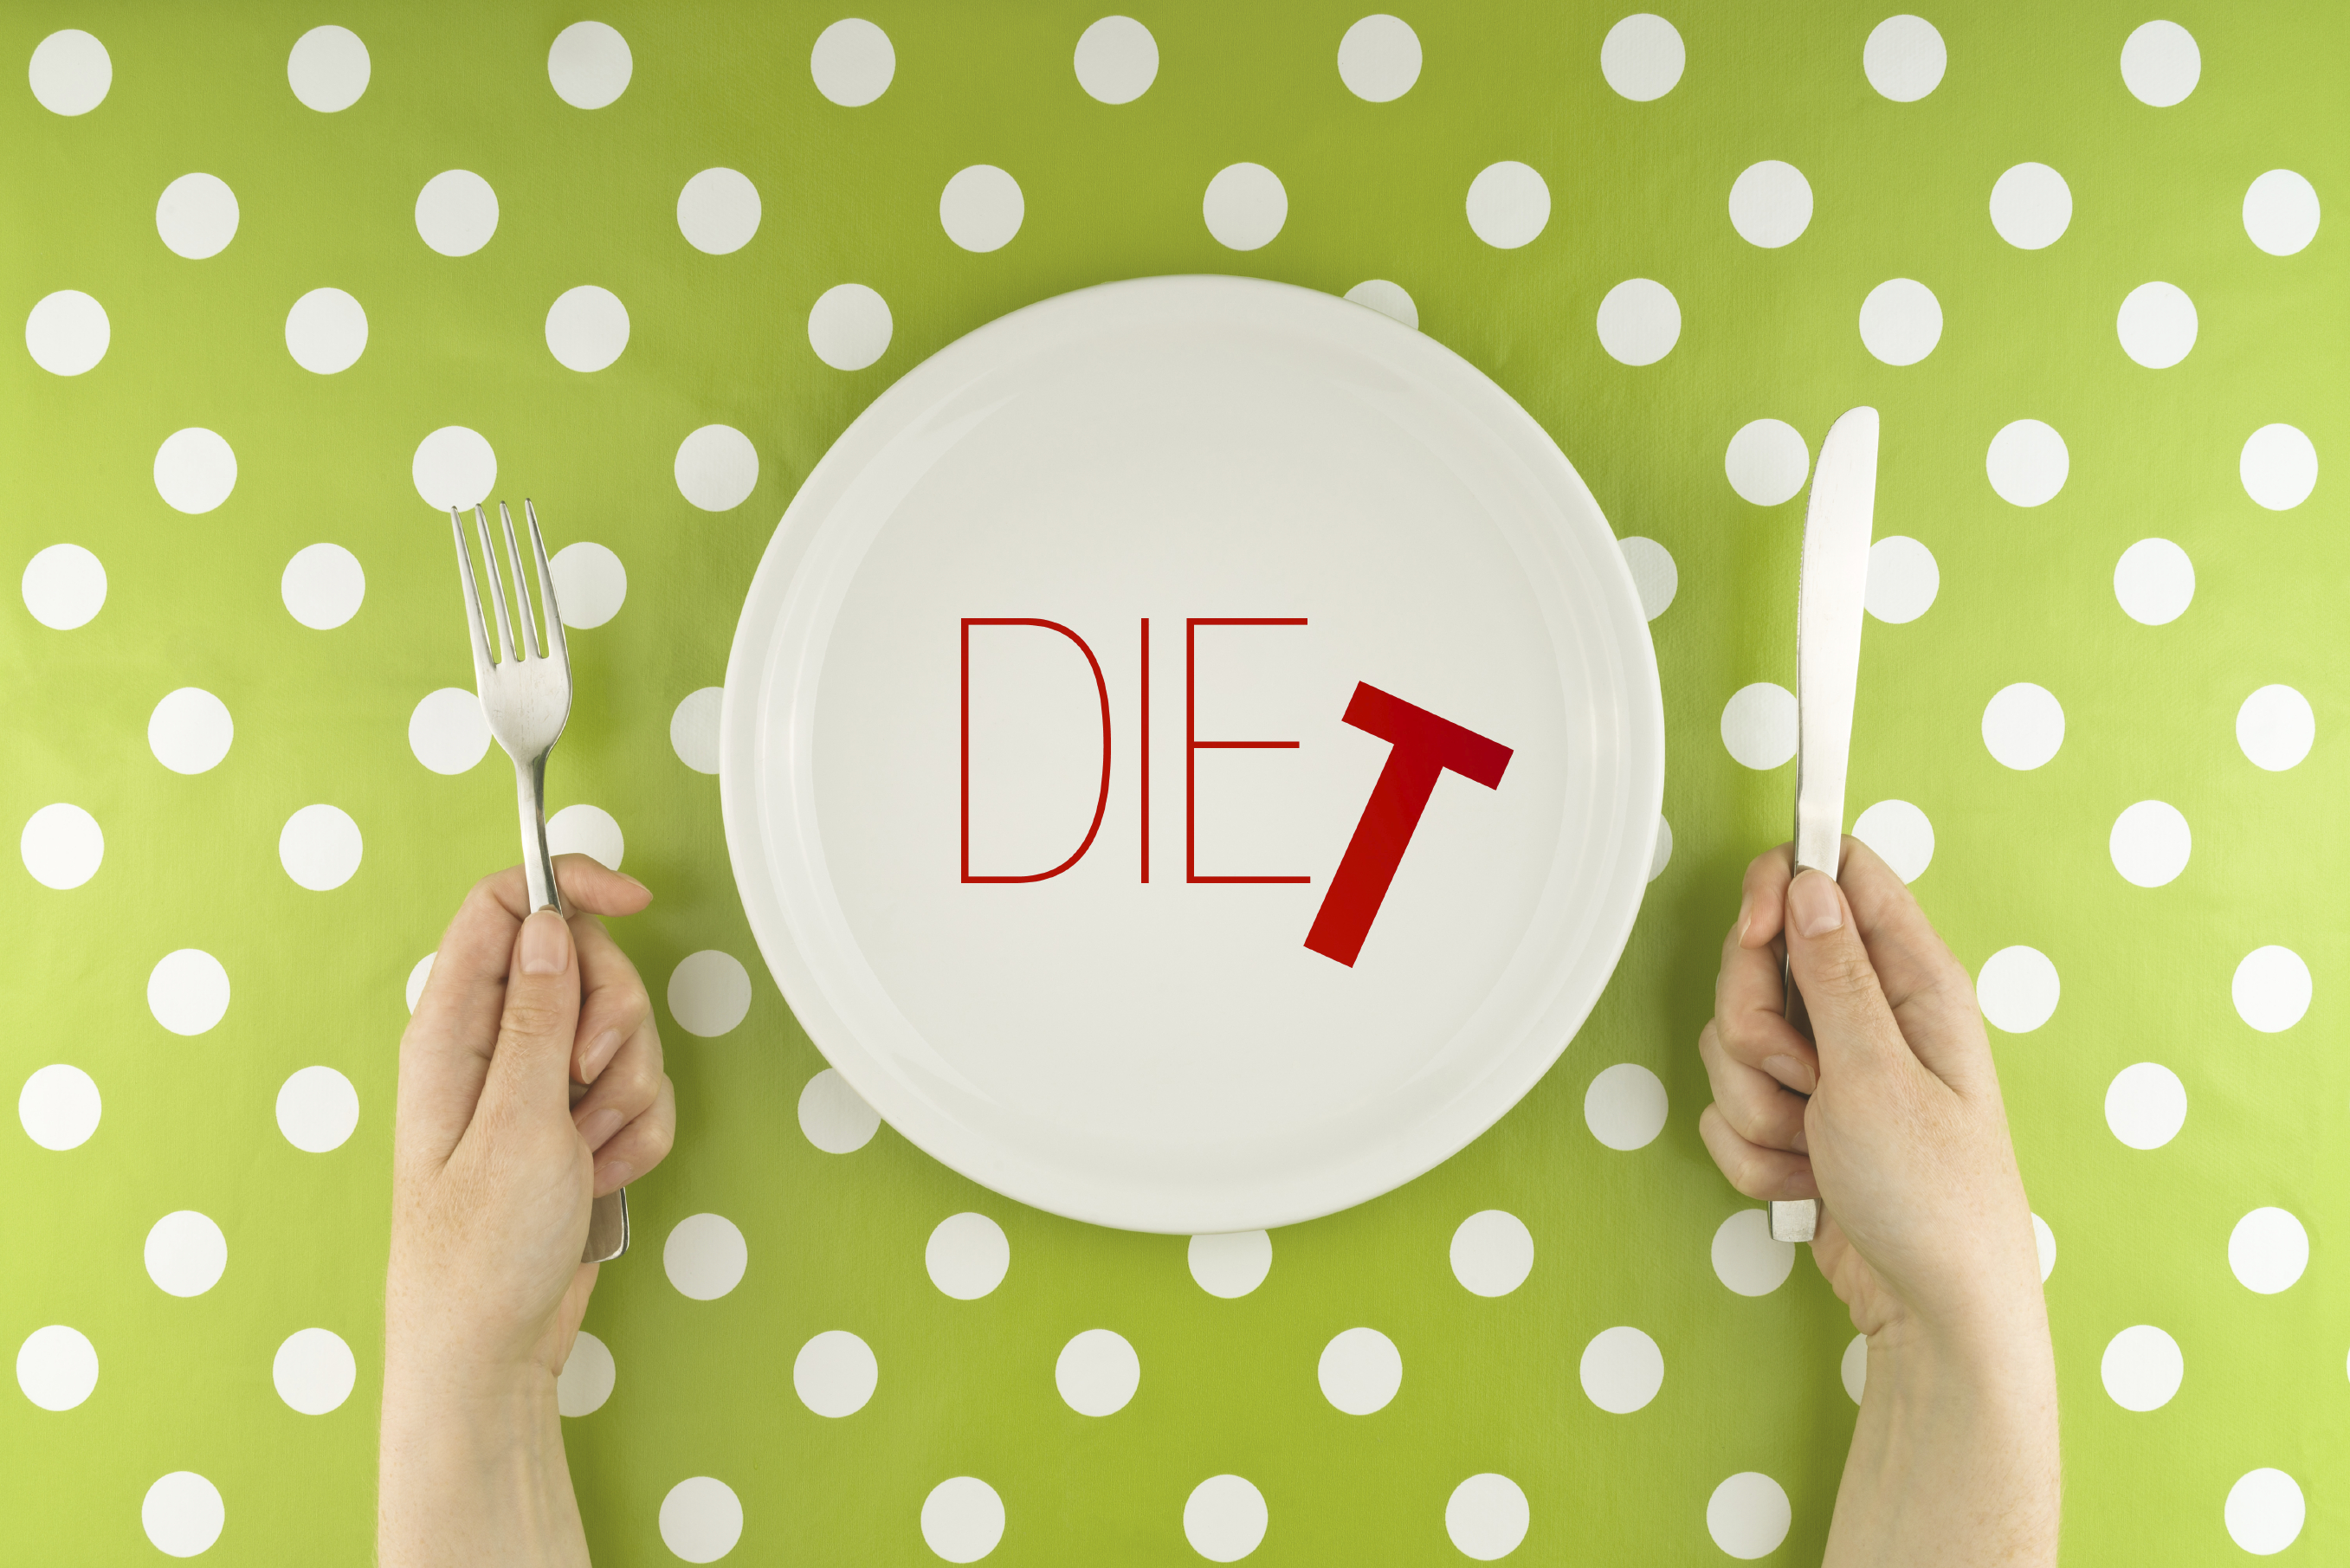 5-Signs-Your-Diet-is-a-Fail-Q4fit.com